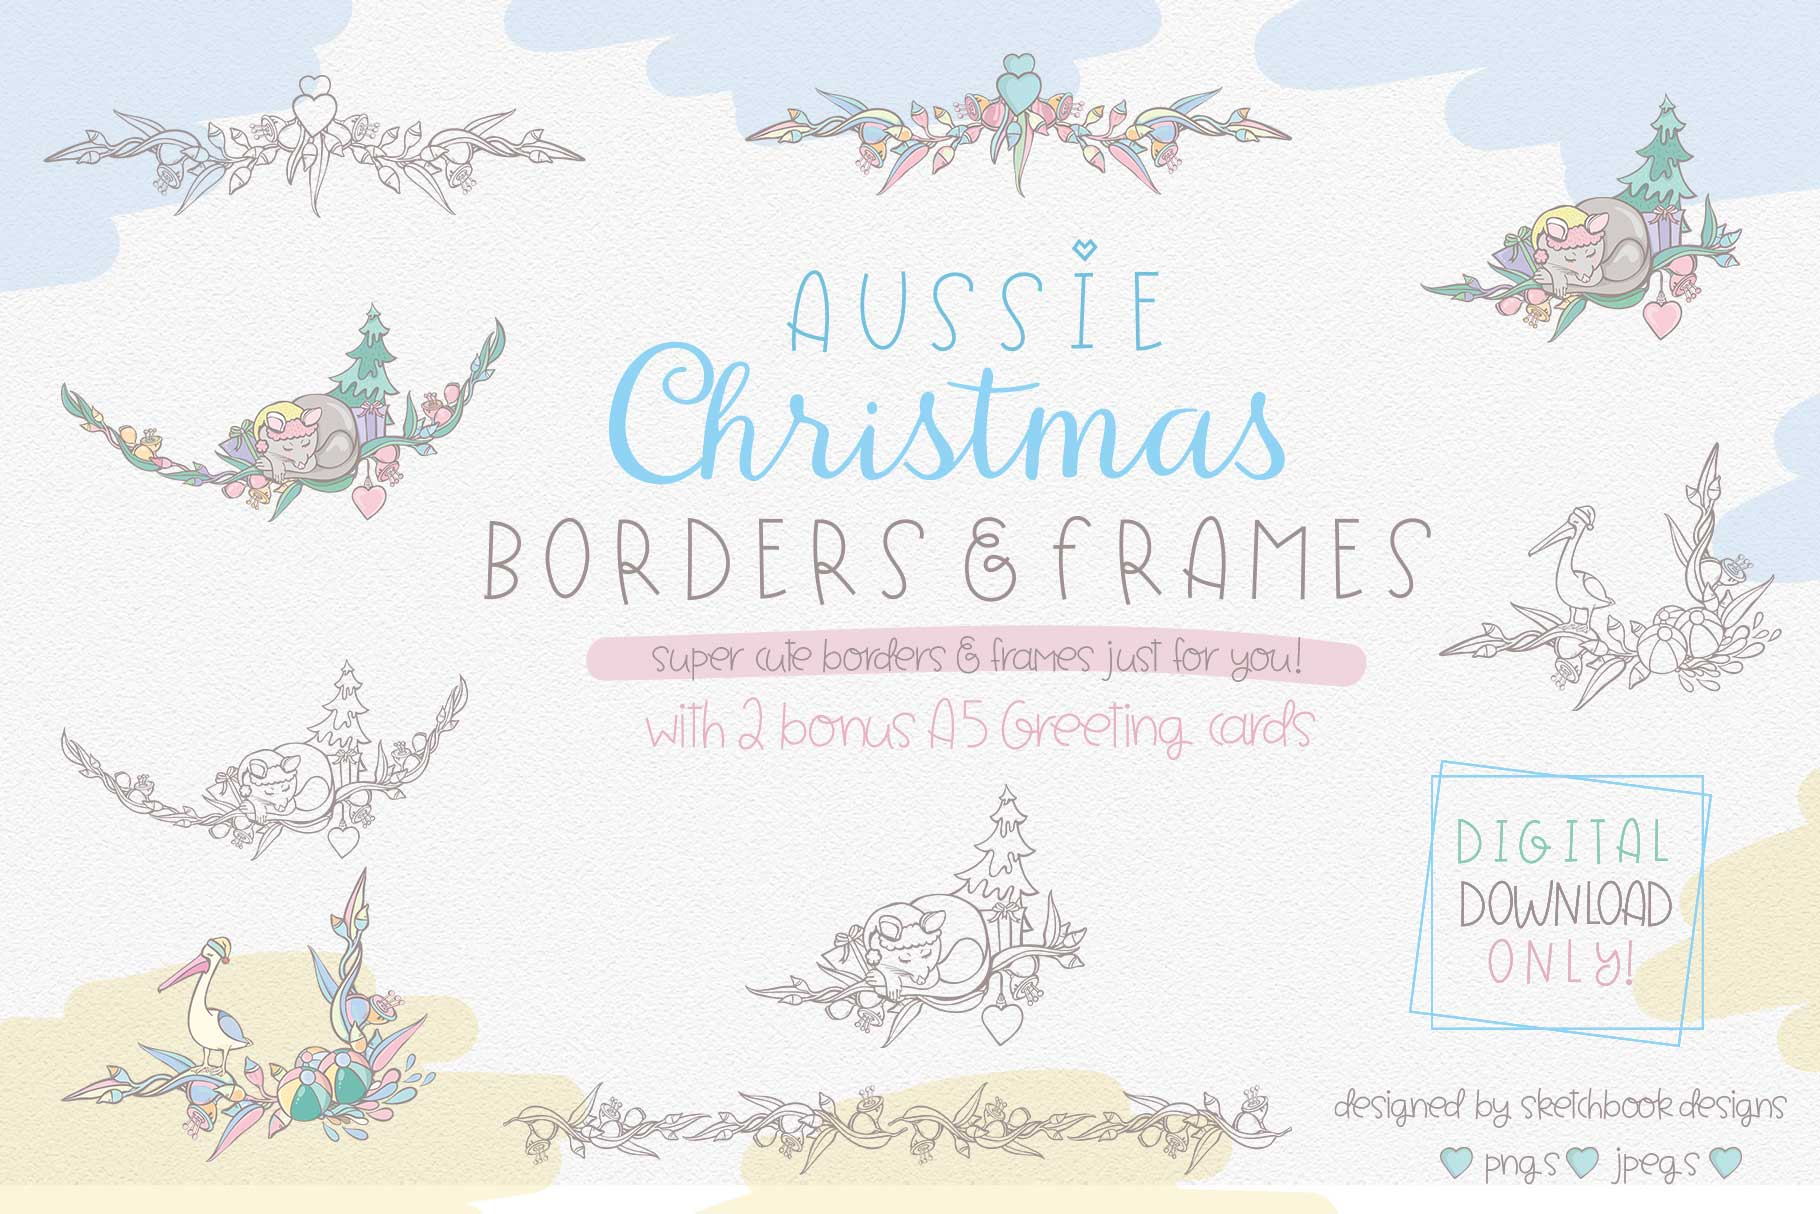 Cute Australian Christmas Borders & Frames.